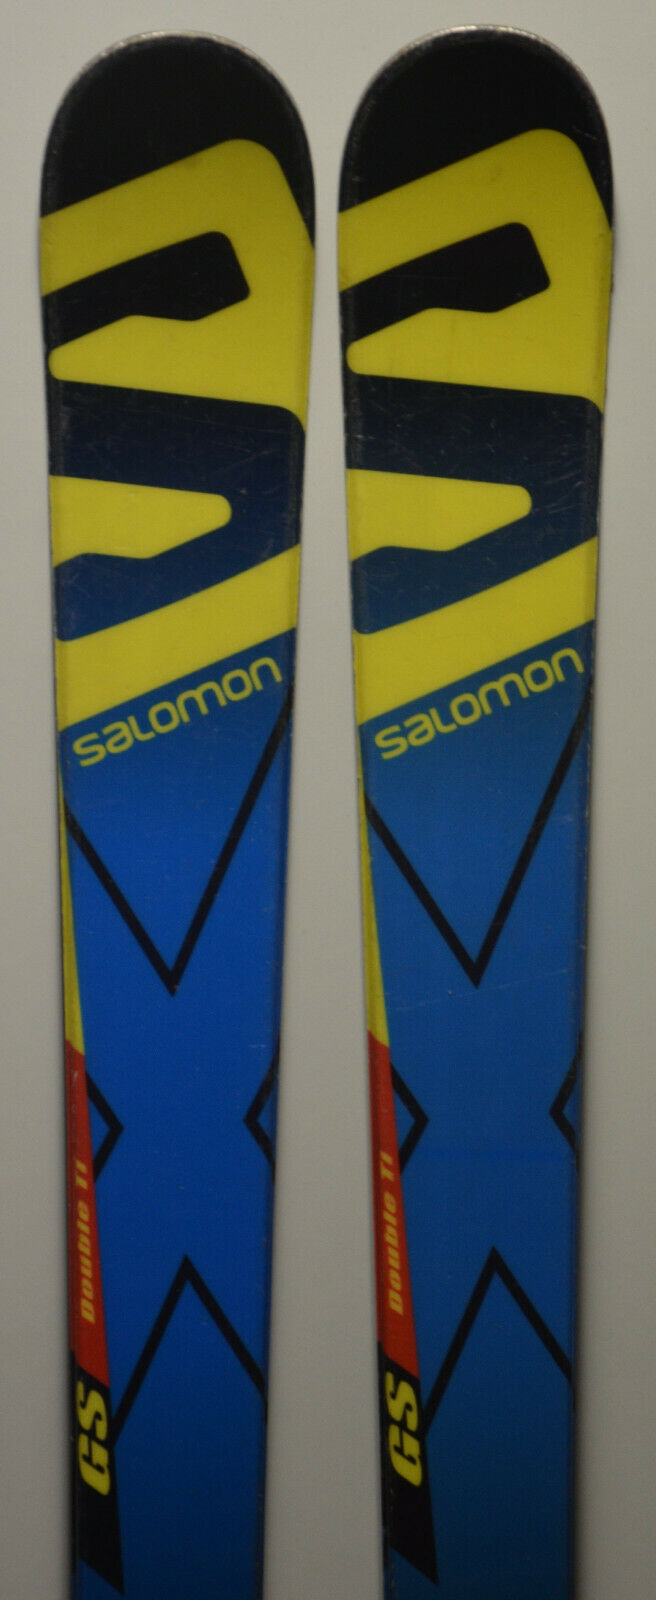 Esquís parabólico Junior SALOMON X Race GS junior + Fijaciones - 159cm   166cm